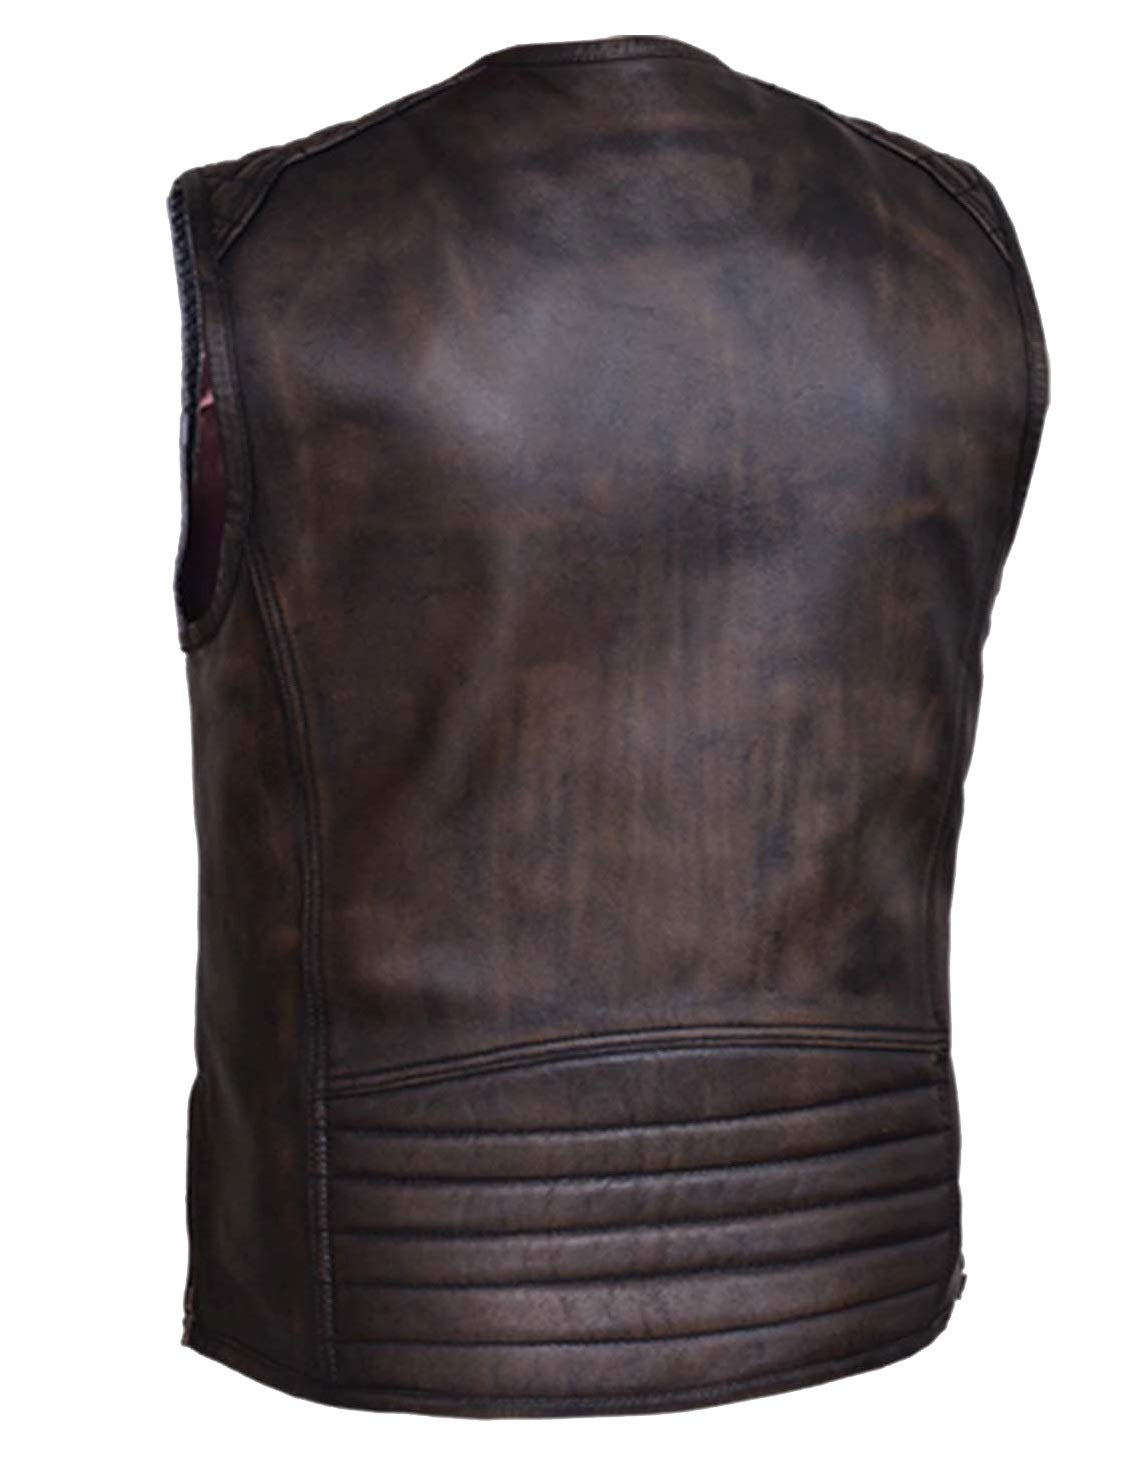 Mens Motorcycle Retro Brown Collarless Closeout price Leather Vest kidney padding back protector S